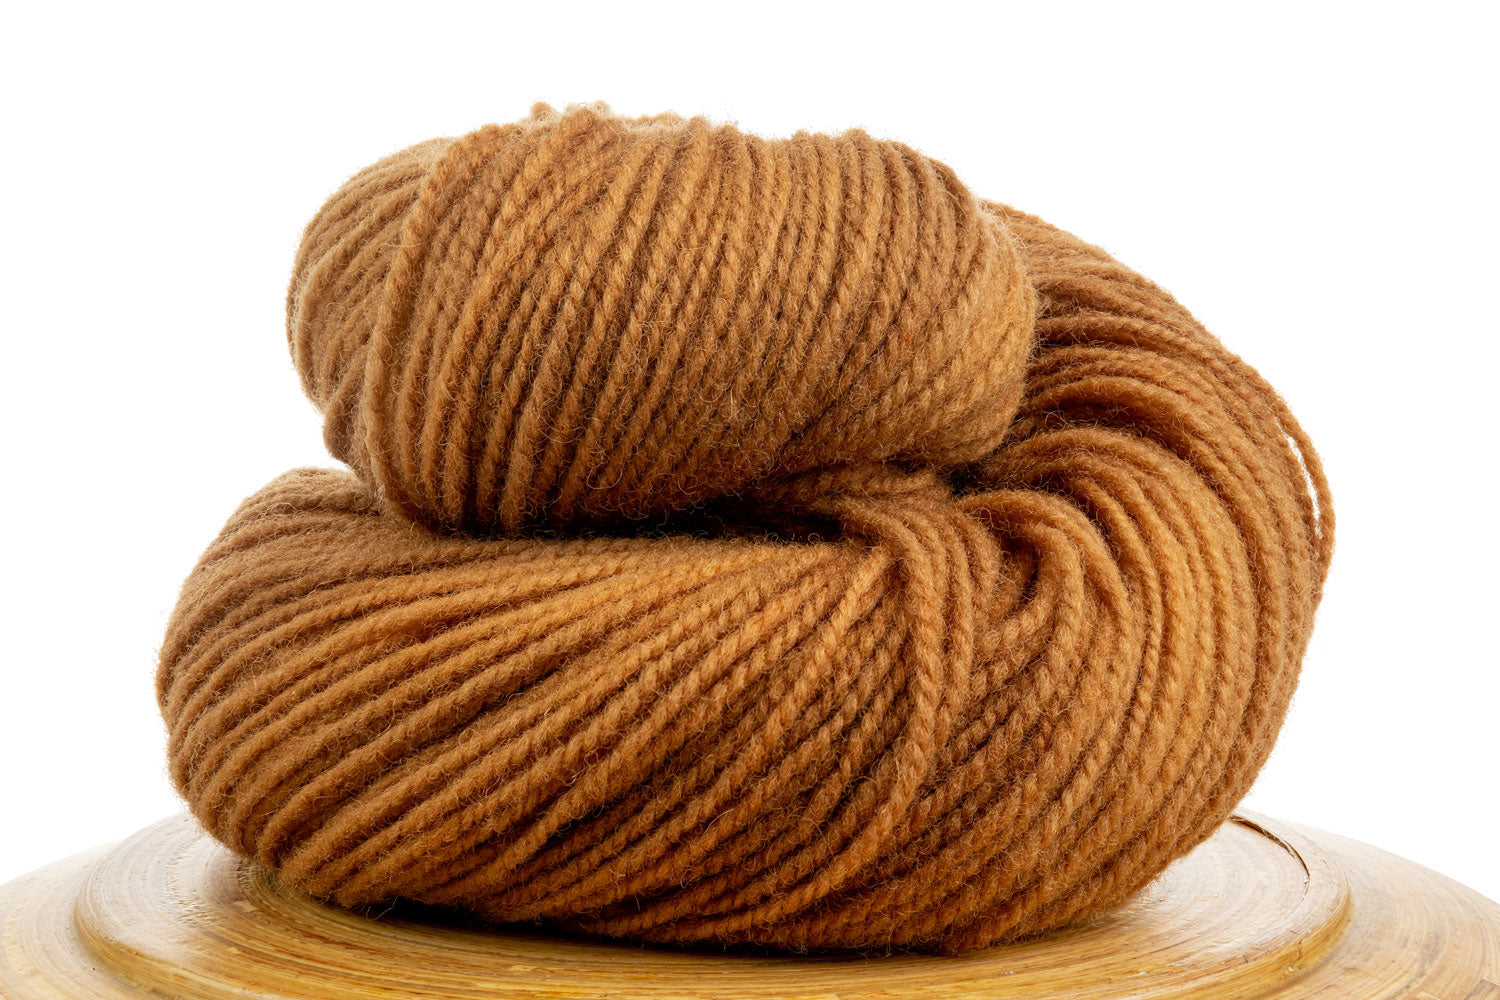 Winfield Canadian hand-dyed wool yarn in Sandy Beach, a pale brown